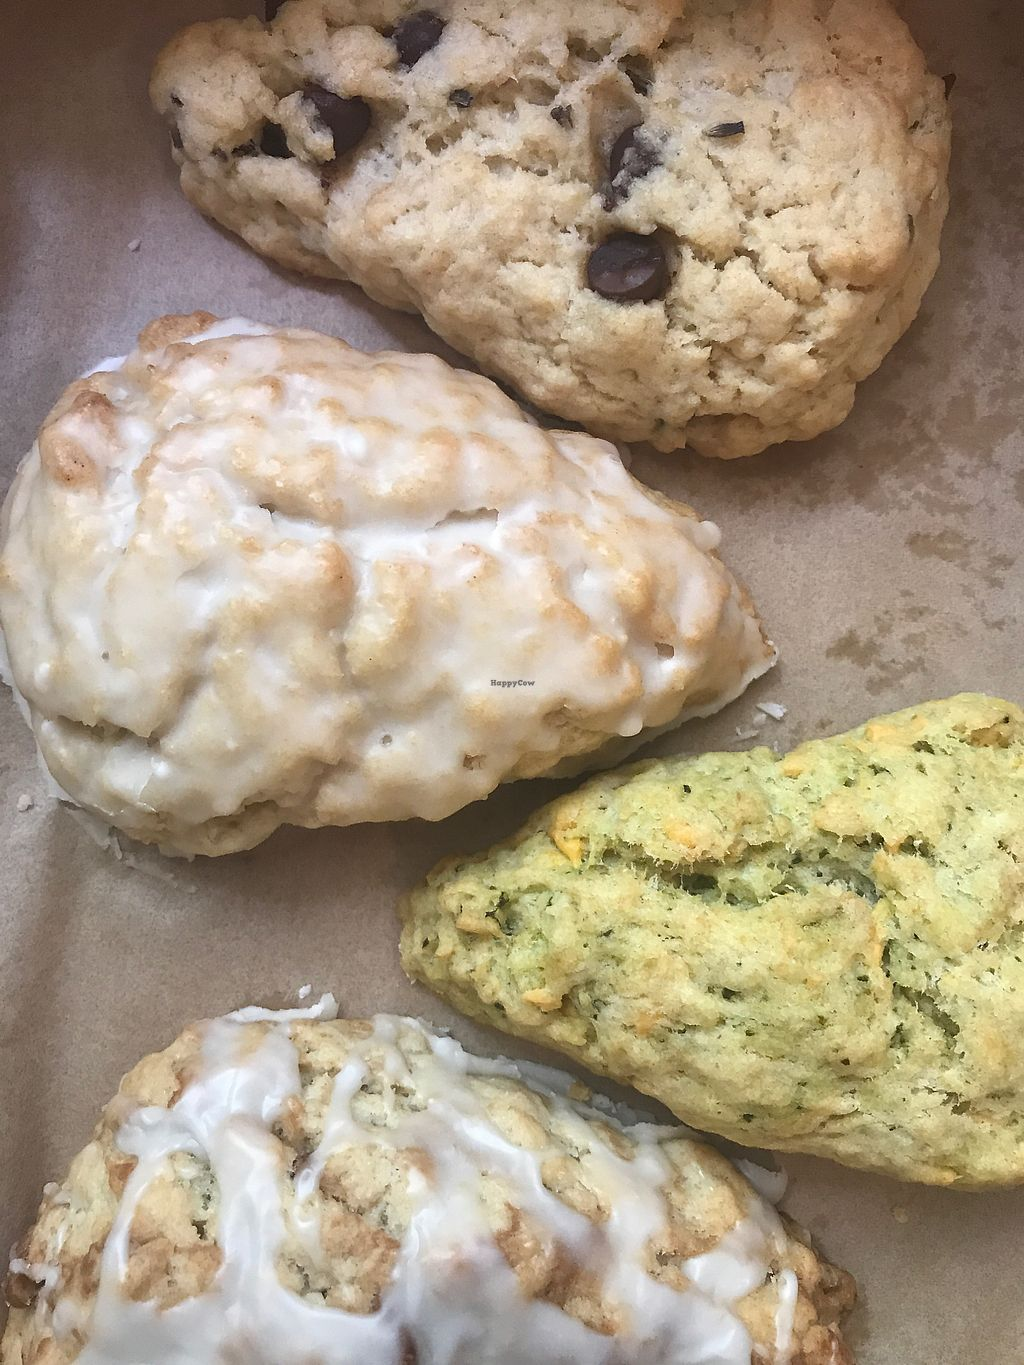 """Photo of Dulce Vegan Bakery and Cafe  by <a href=""""/members/profile/KerryElise"""">KerryElise</a> <br/>Scones  <br/> September 24, 2017  - <a href='/contact/abuse/image/26735/307820'>Report</a>"""